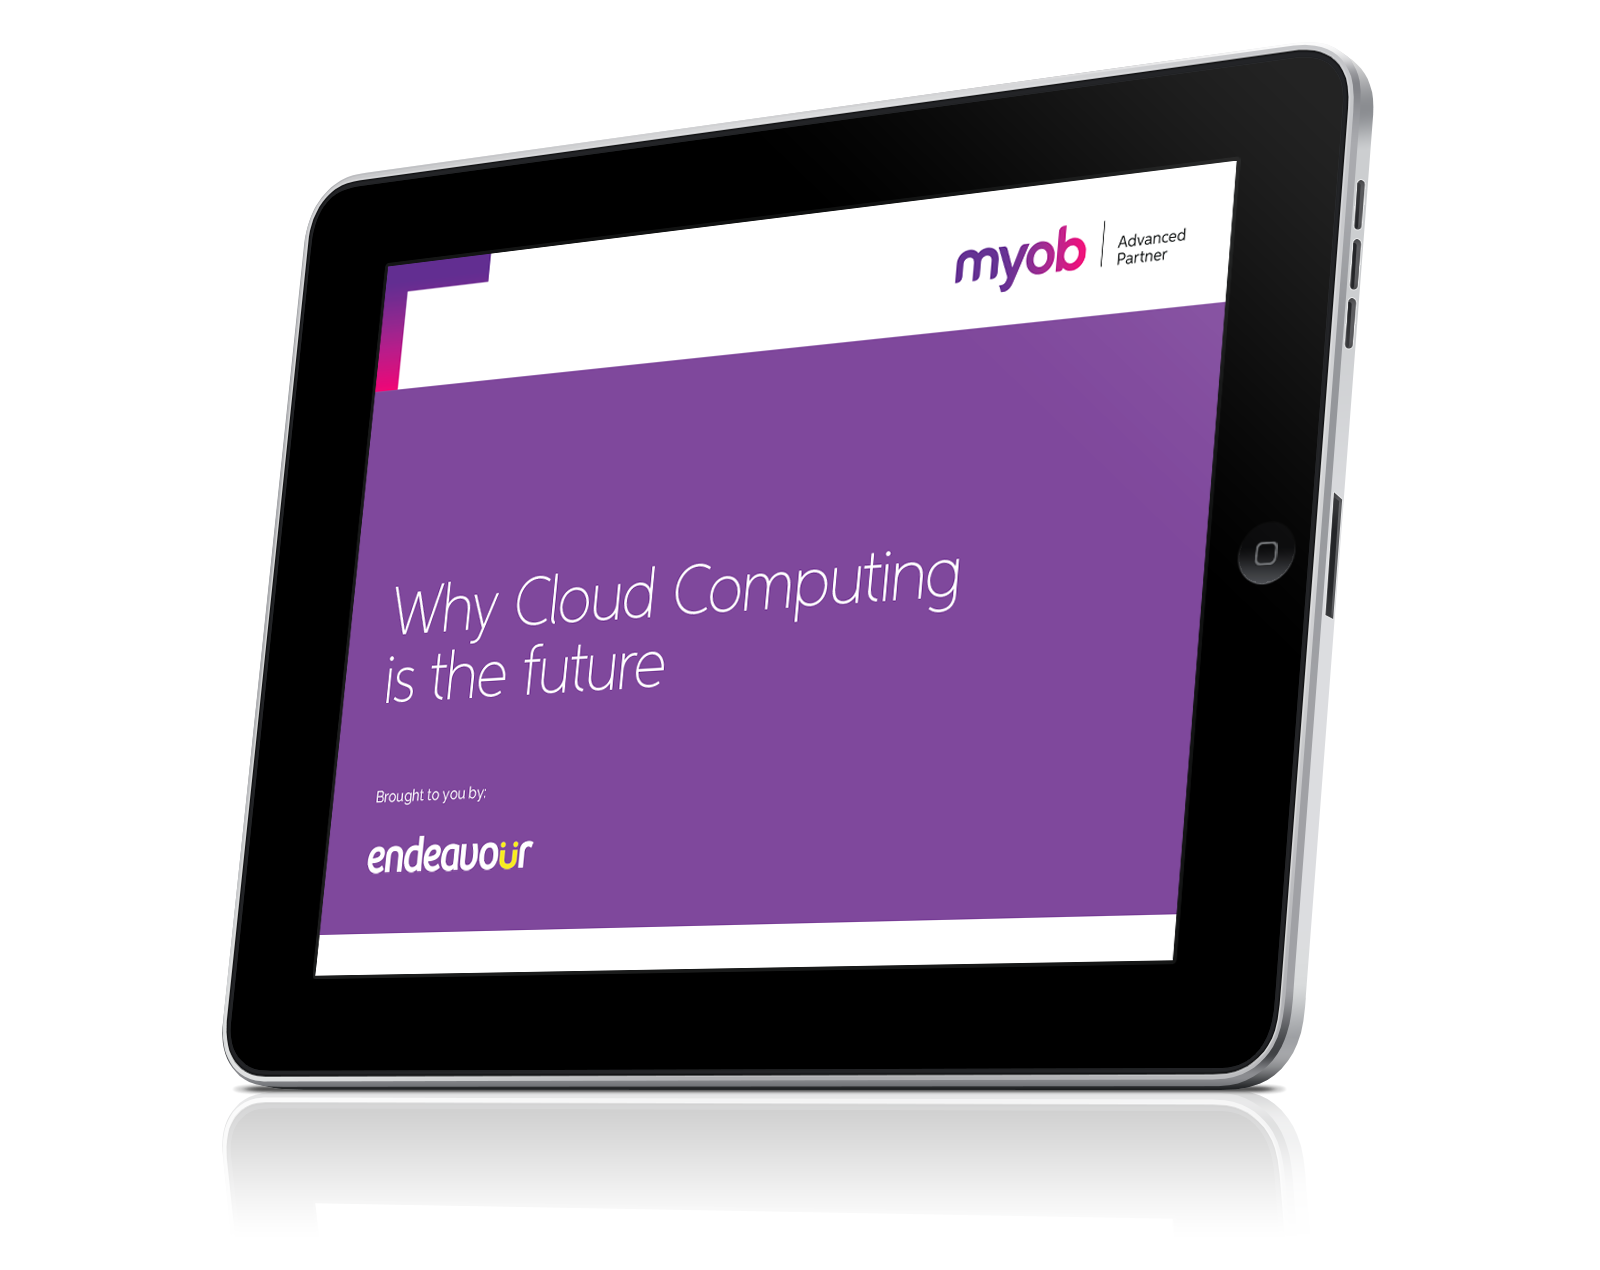 3Dcover_EndeavourAU_MYOB_Why Cloud Computing is the Future